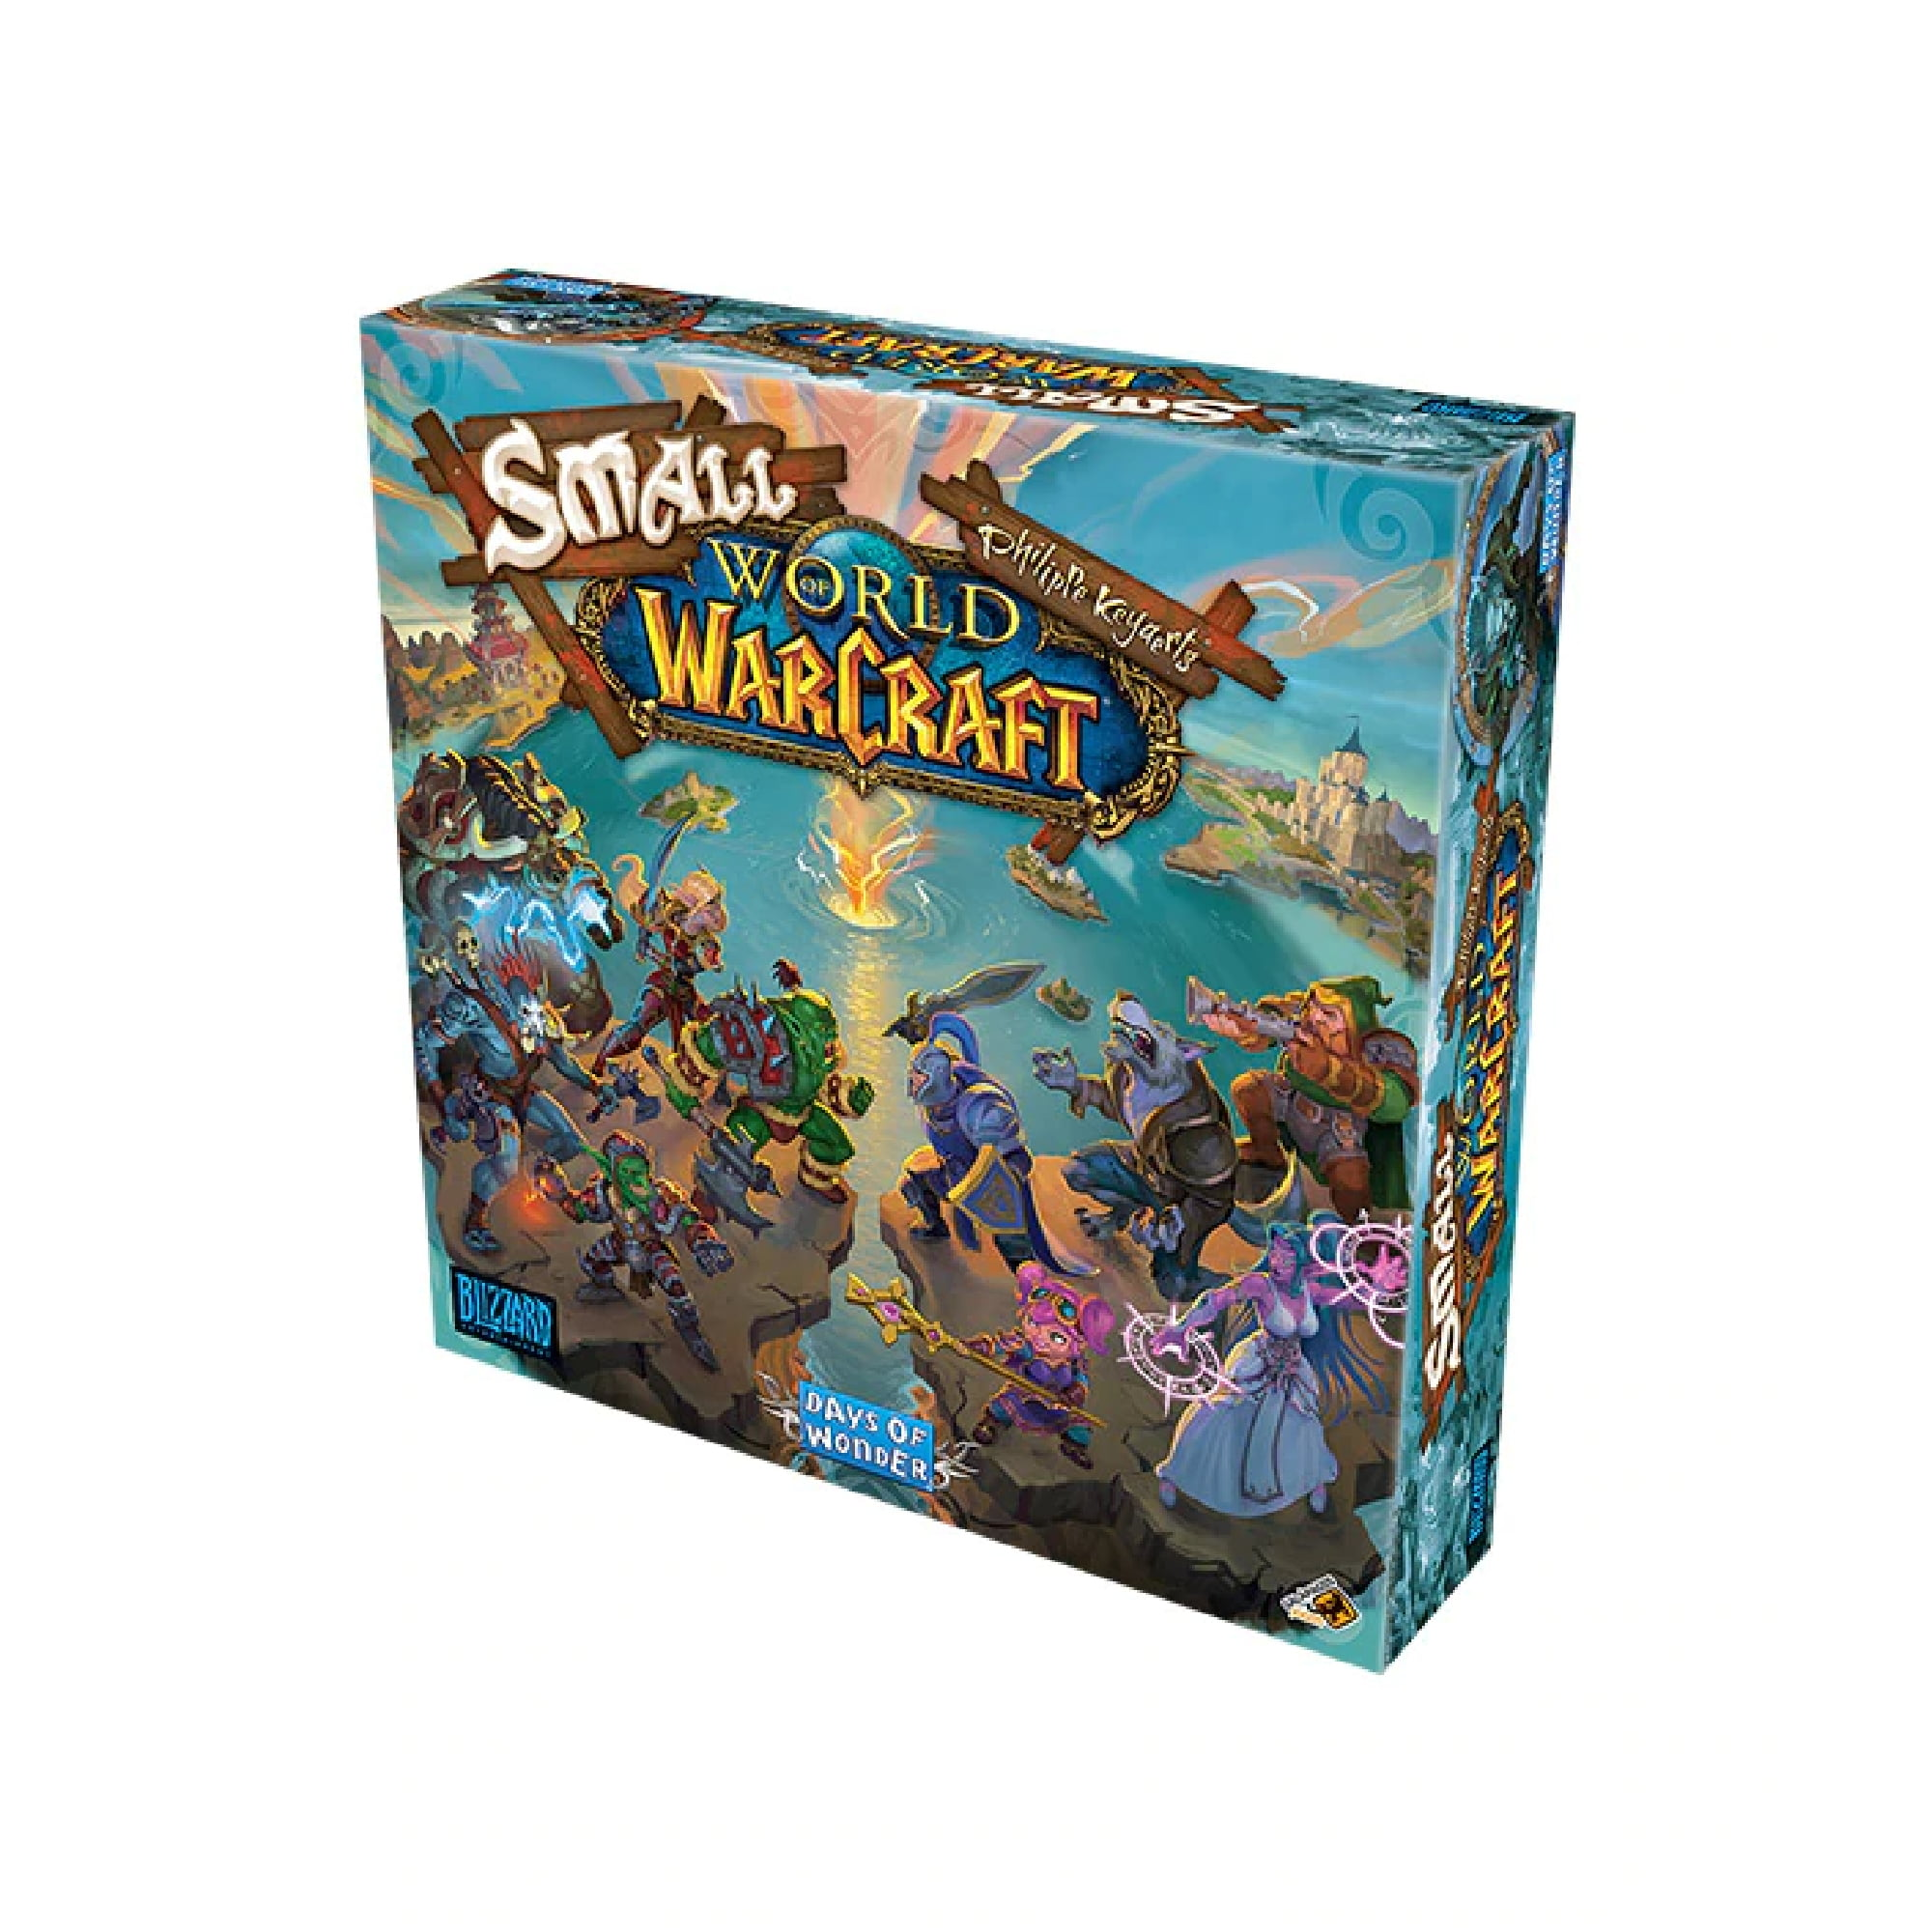 Small World of Warcraft + Promo Dice Pack